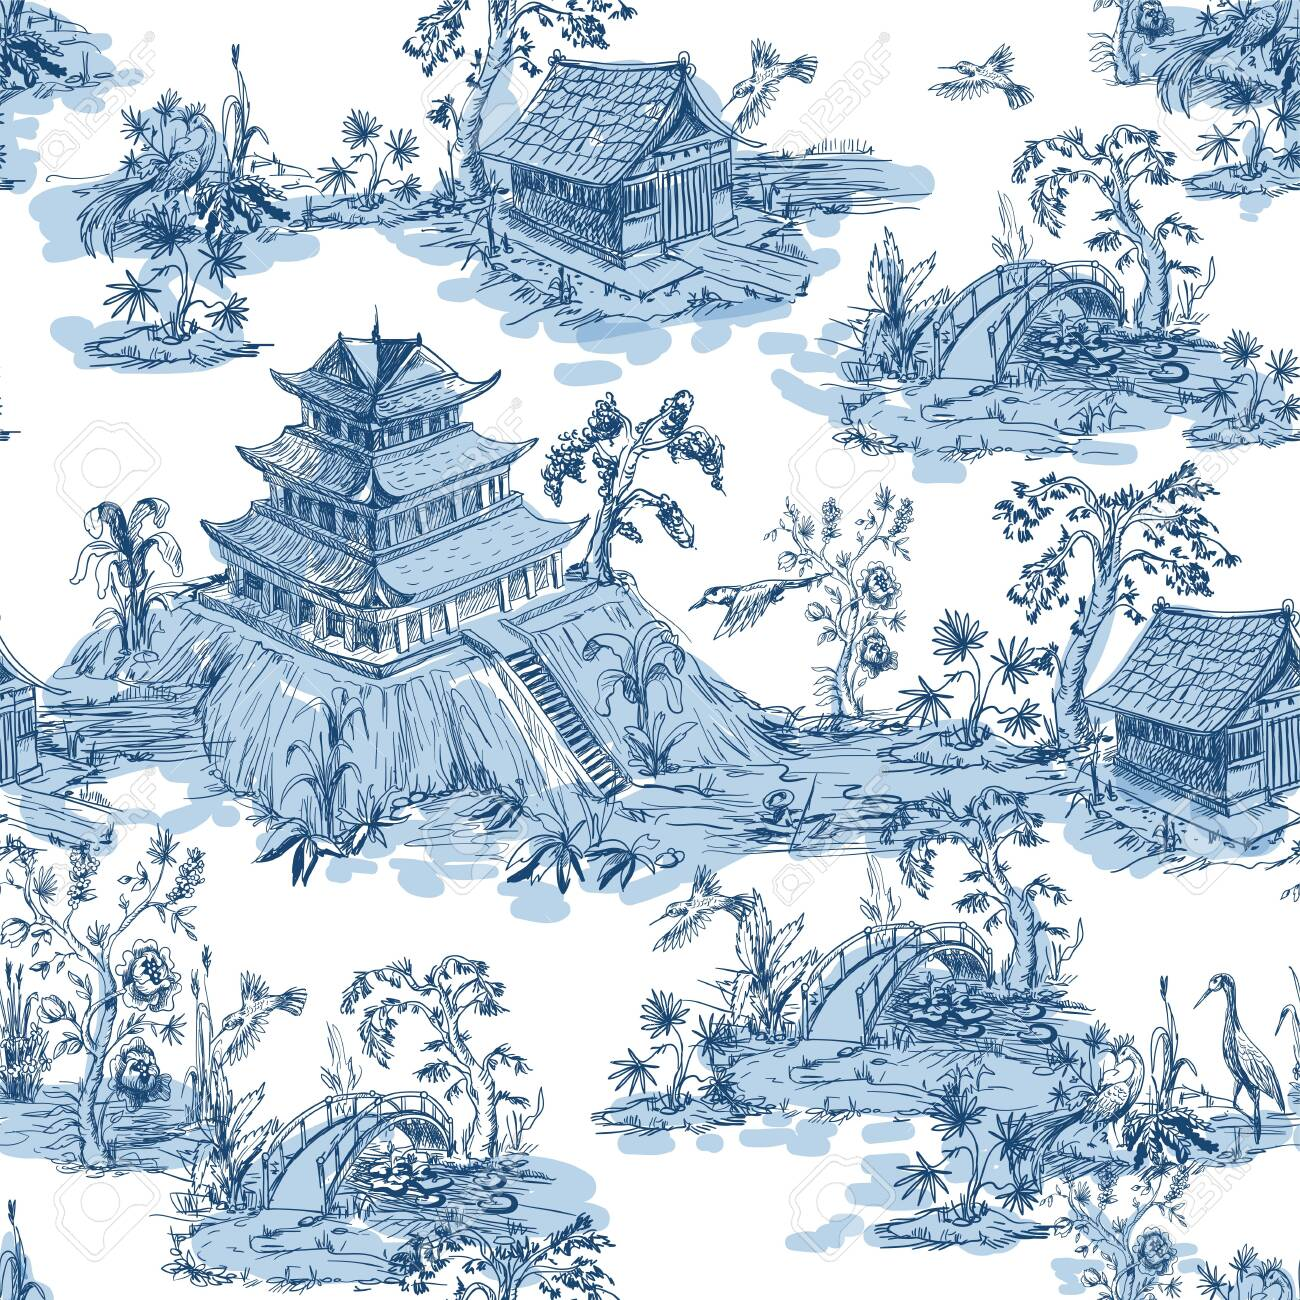 Seamless pattern in chinoiserie style for fabric or interior design. - 129392975